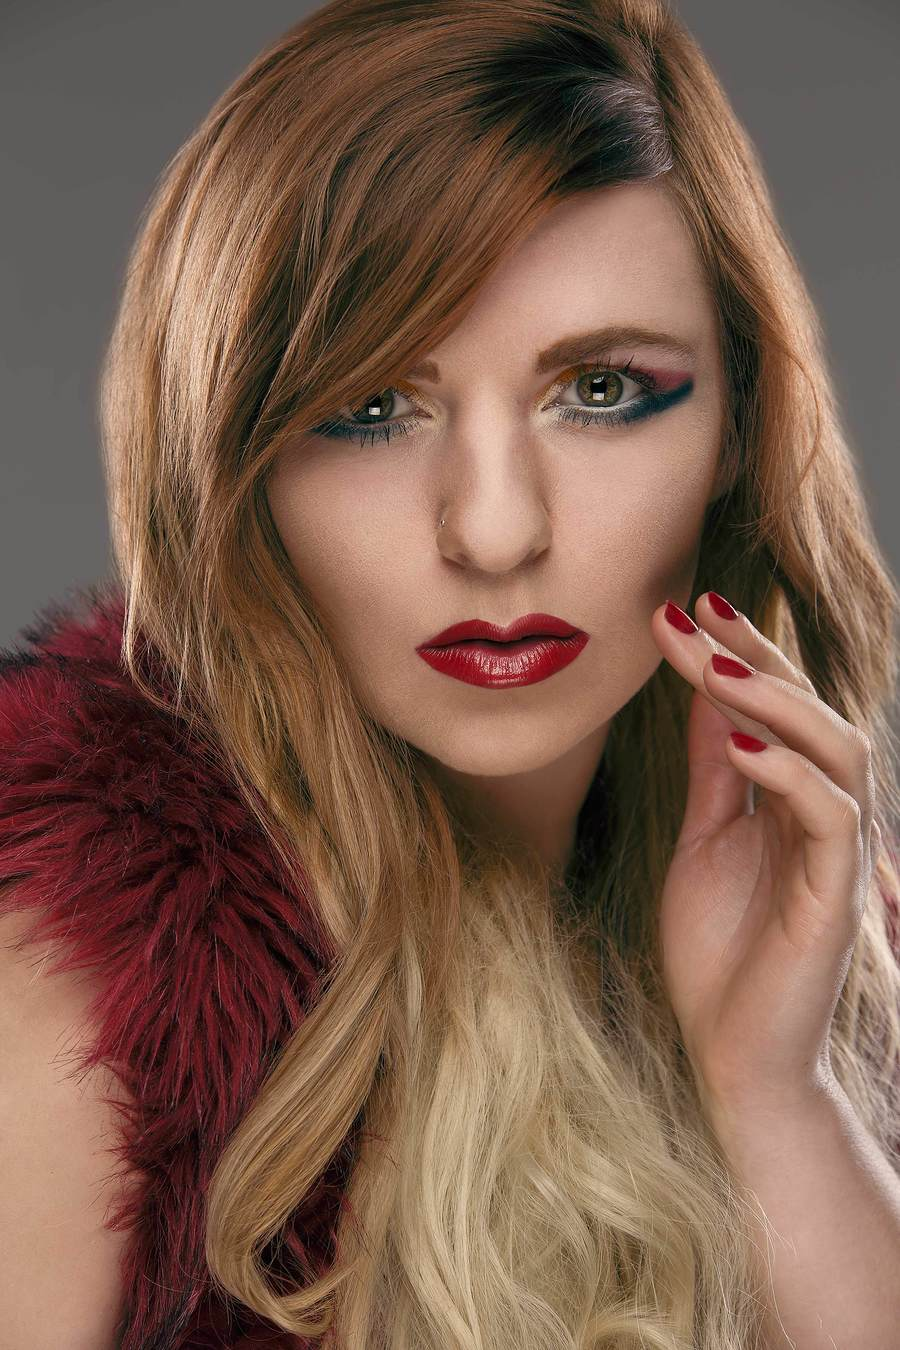 Lips as Red as Roses / Photography by Grewy, Model Helen-Rose, Makeup by Helen-Rose, Post processing by Grewy / Uploaded 2nd January 2019 @ 04:06 PM